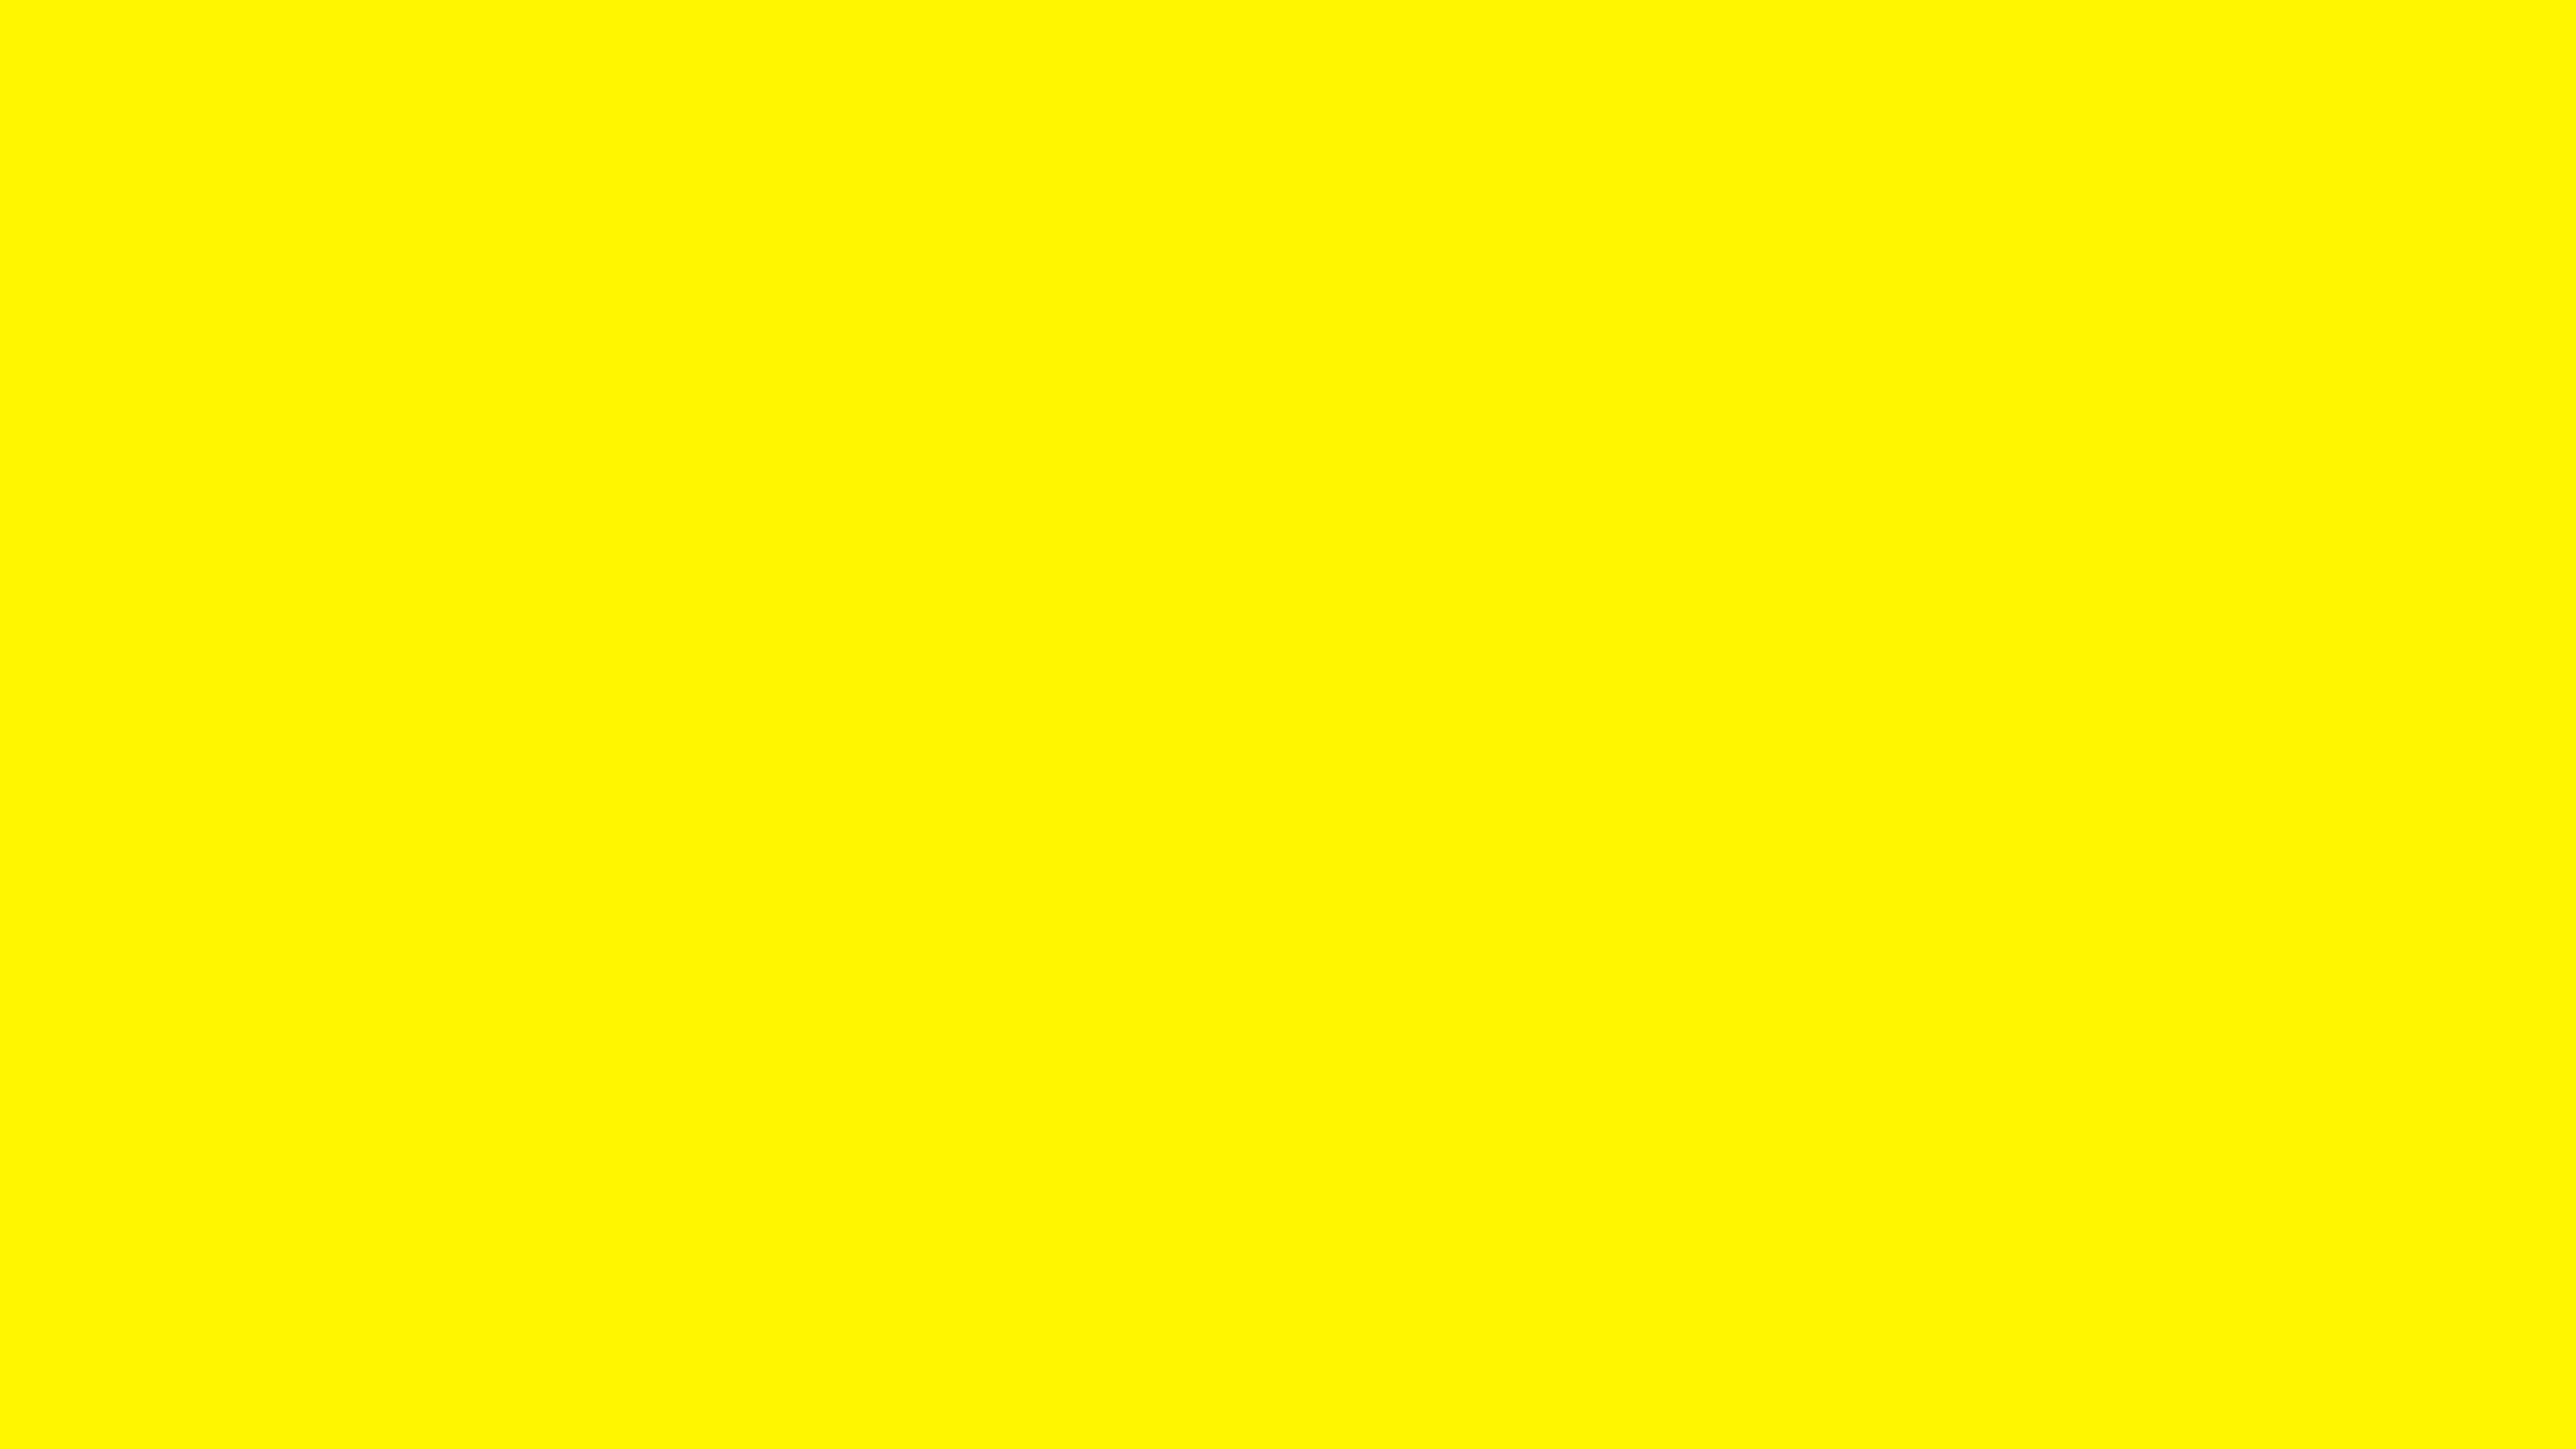 5120x2880 Cadmium Yellow Solid Color Background